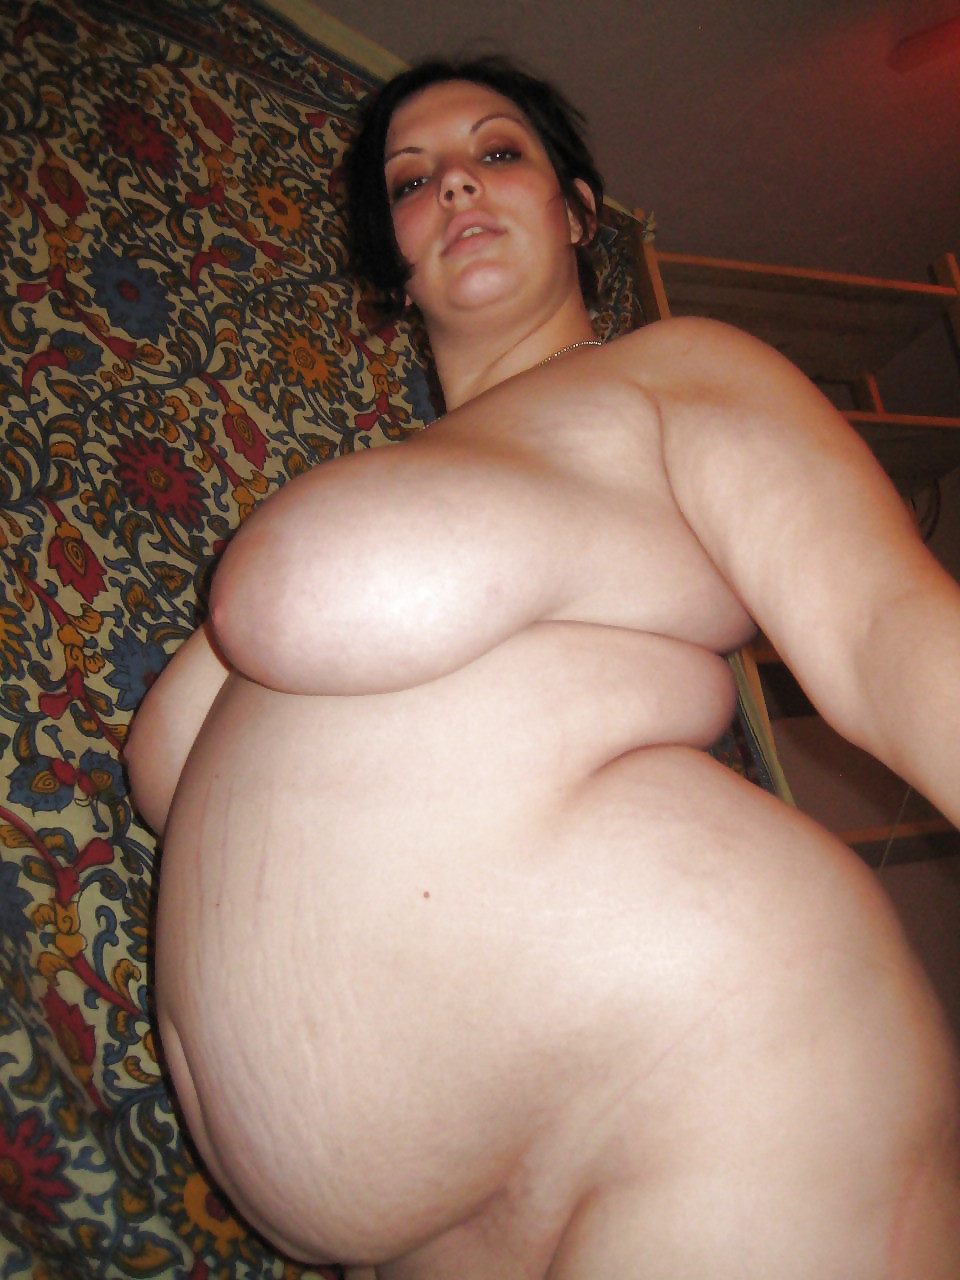 Big belly naked girl — photo 5